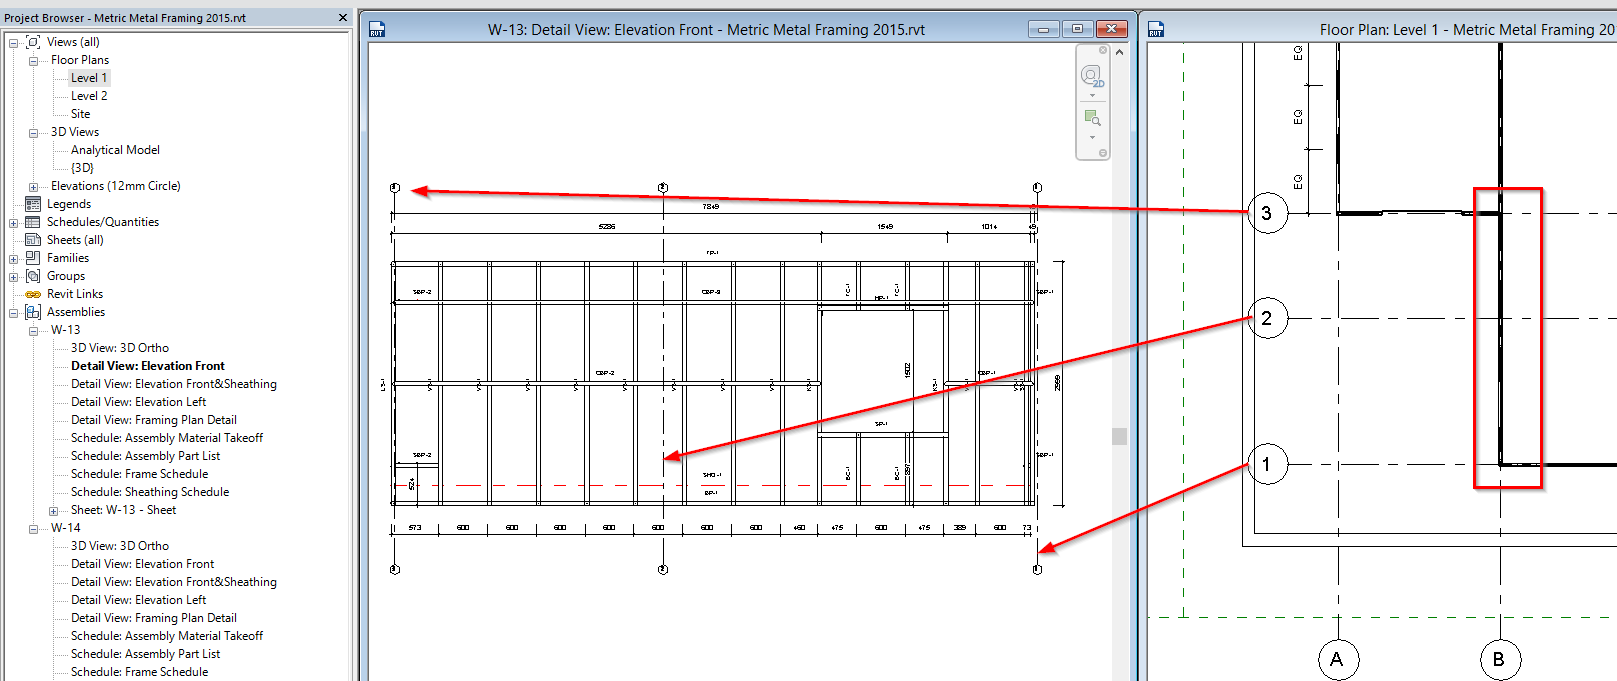 Aga cad blog sharing bim practice agacad tools4bim note original grids need to be created by the center of the wall in the plan view publicscrutiny Images